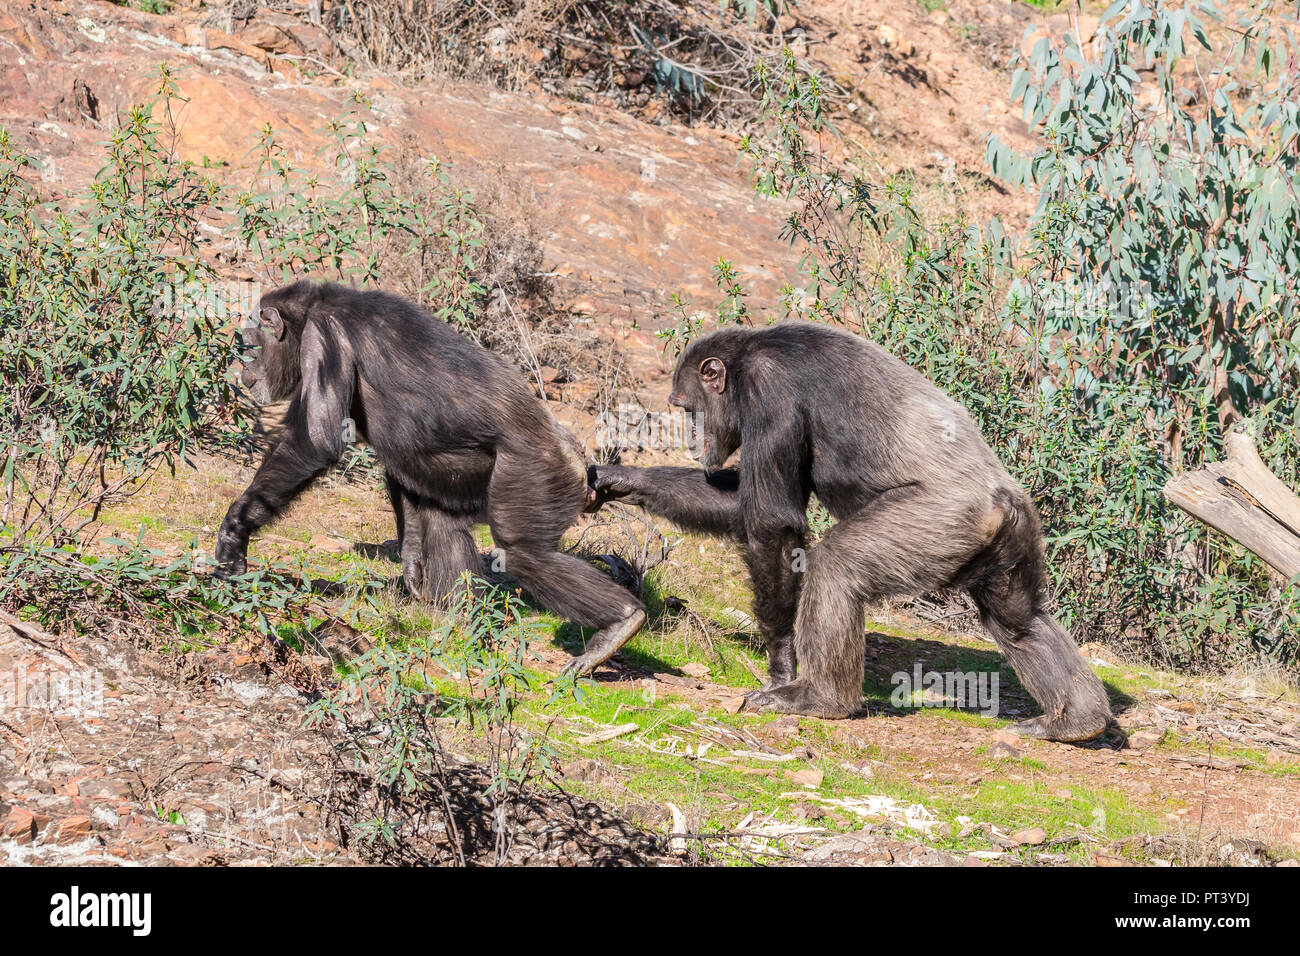 Chimpanzee male and female in mating season in natural